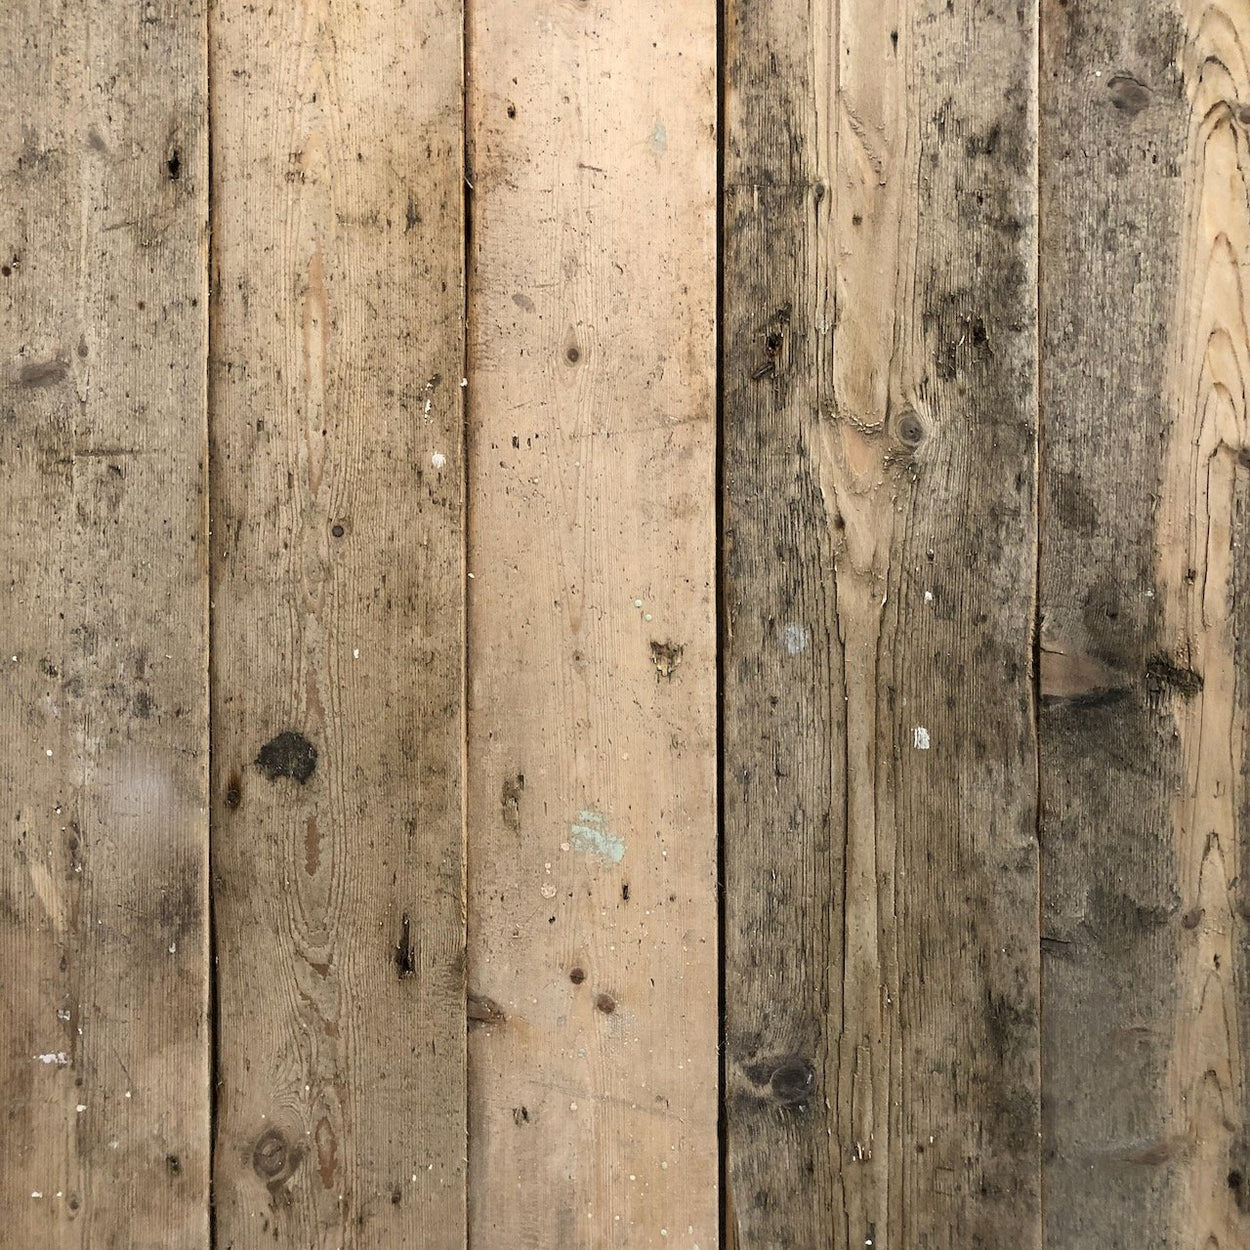 Sample of Fife Arms Natural Reclaimed Wall Cladding